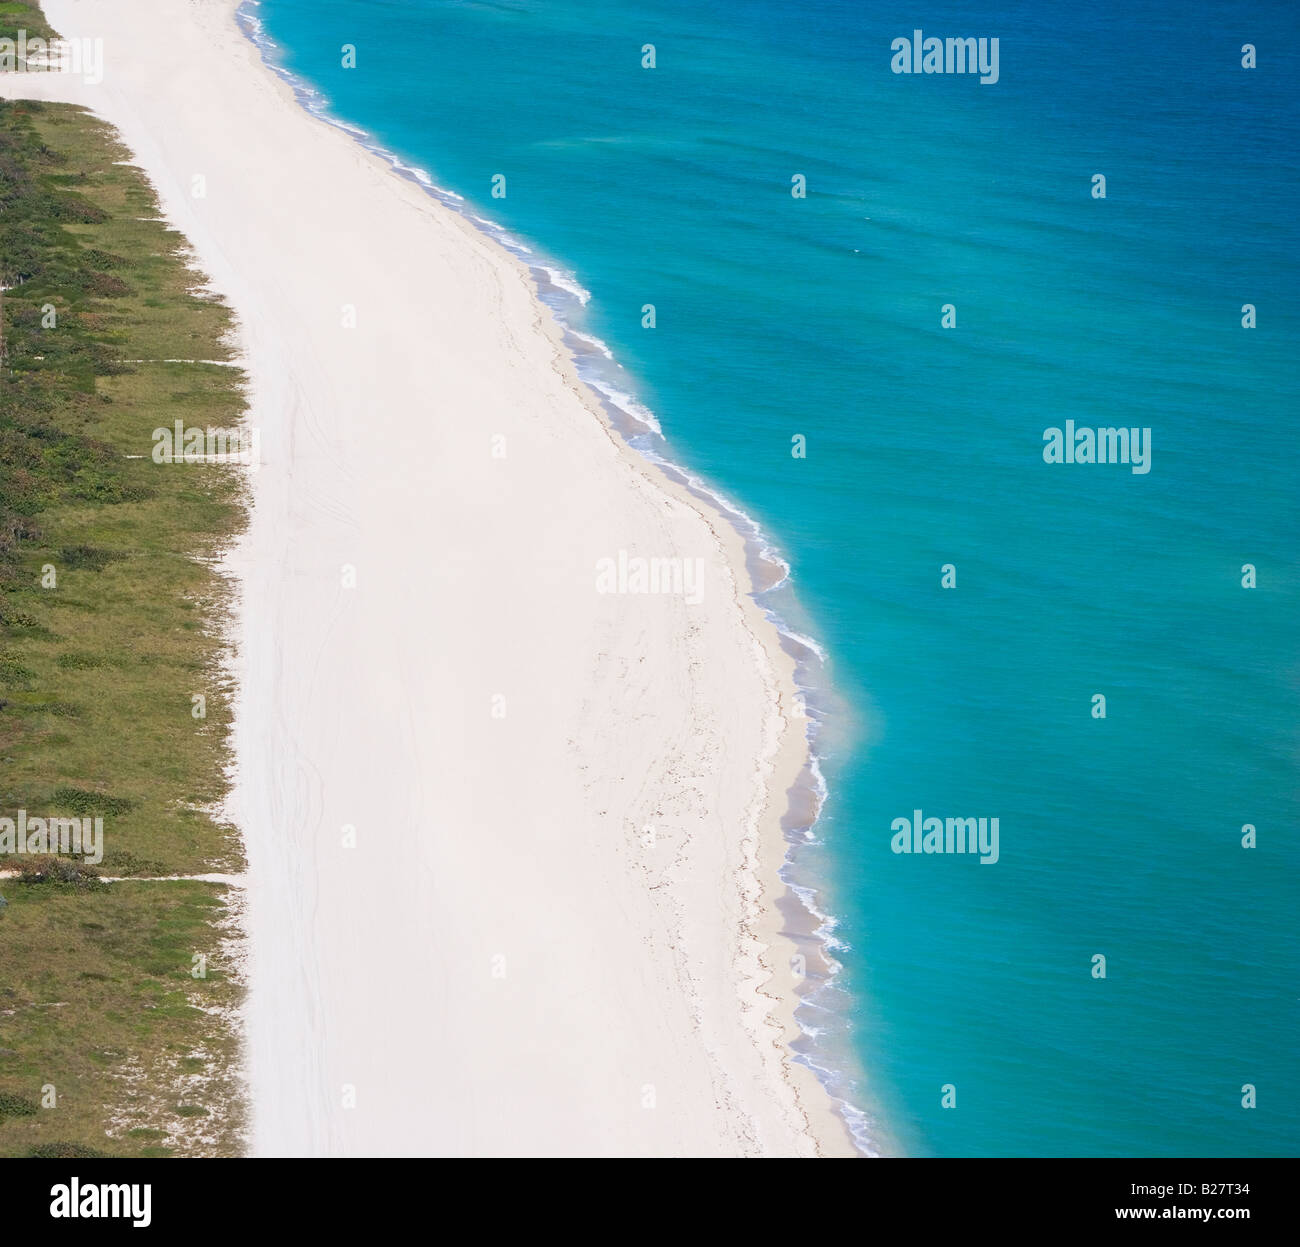 Aerial view of shoreline - Stock Image